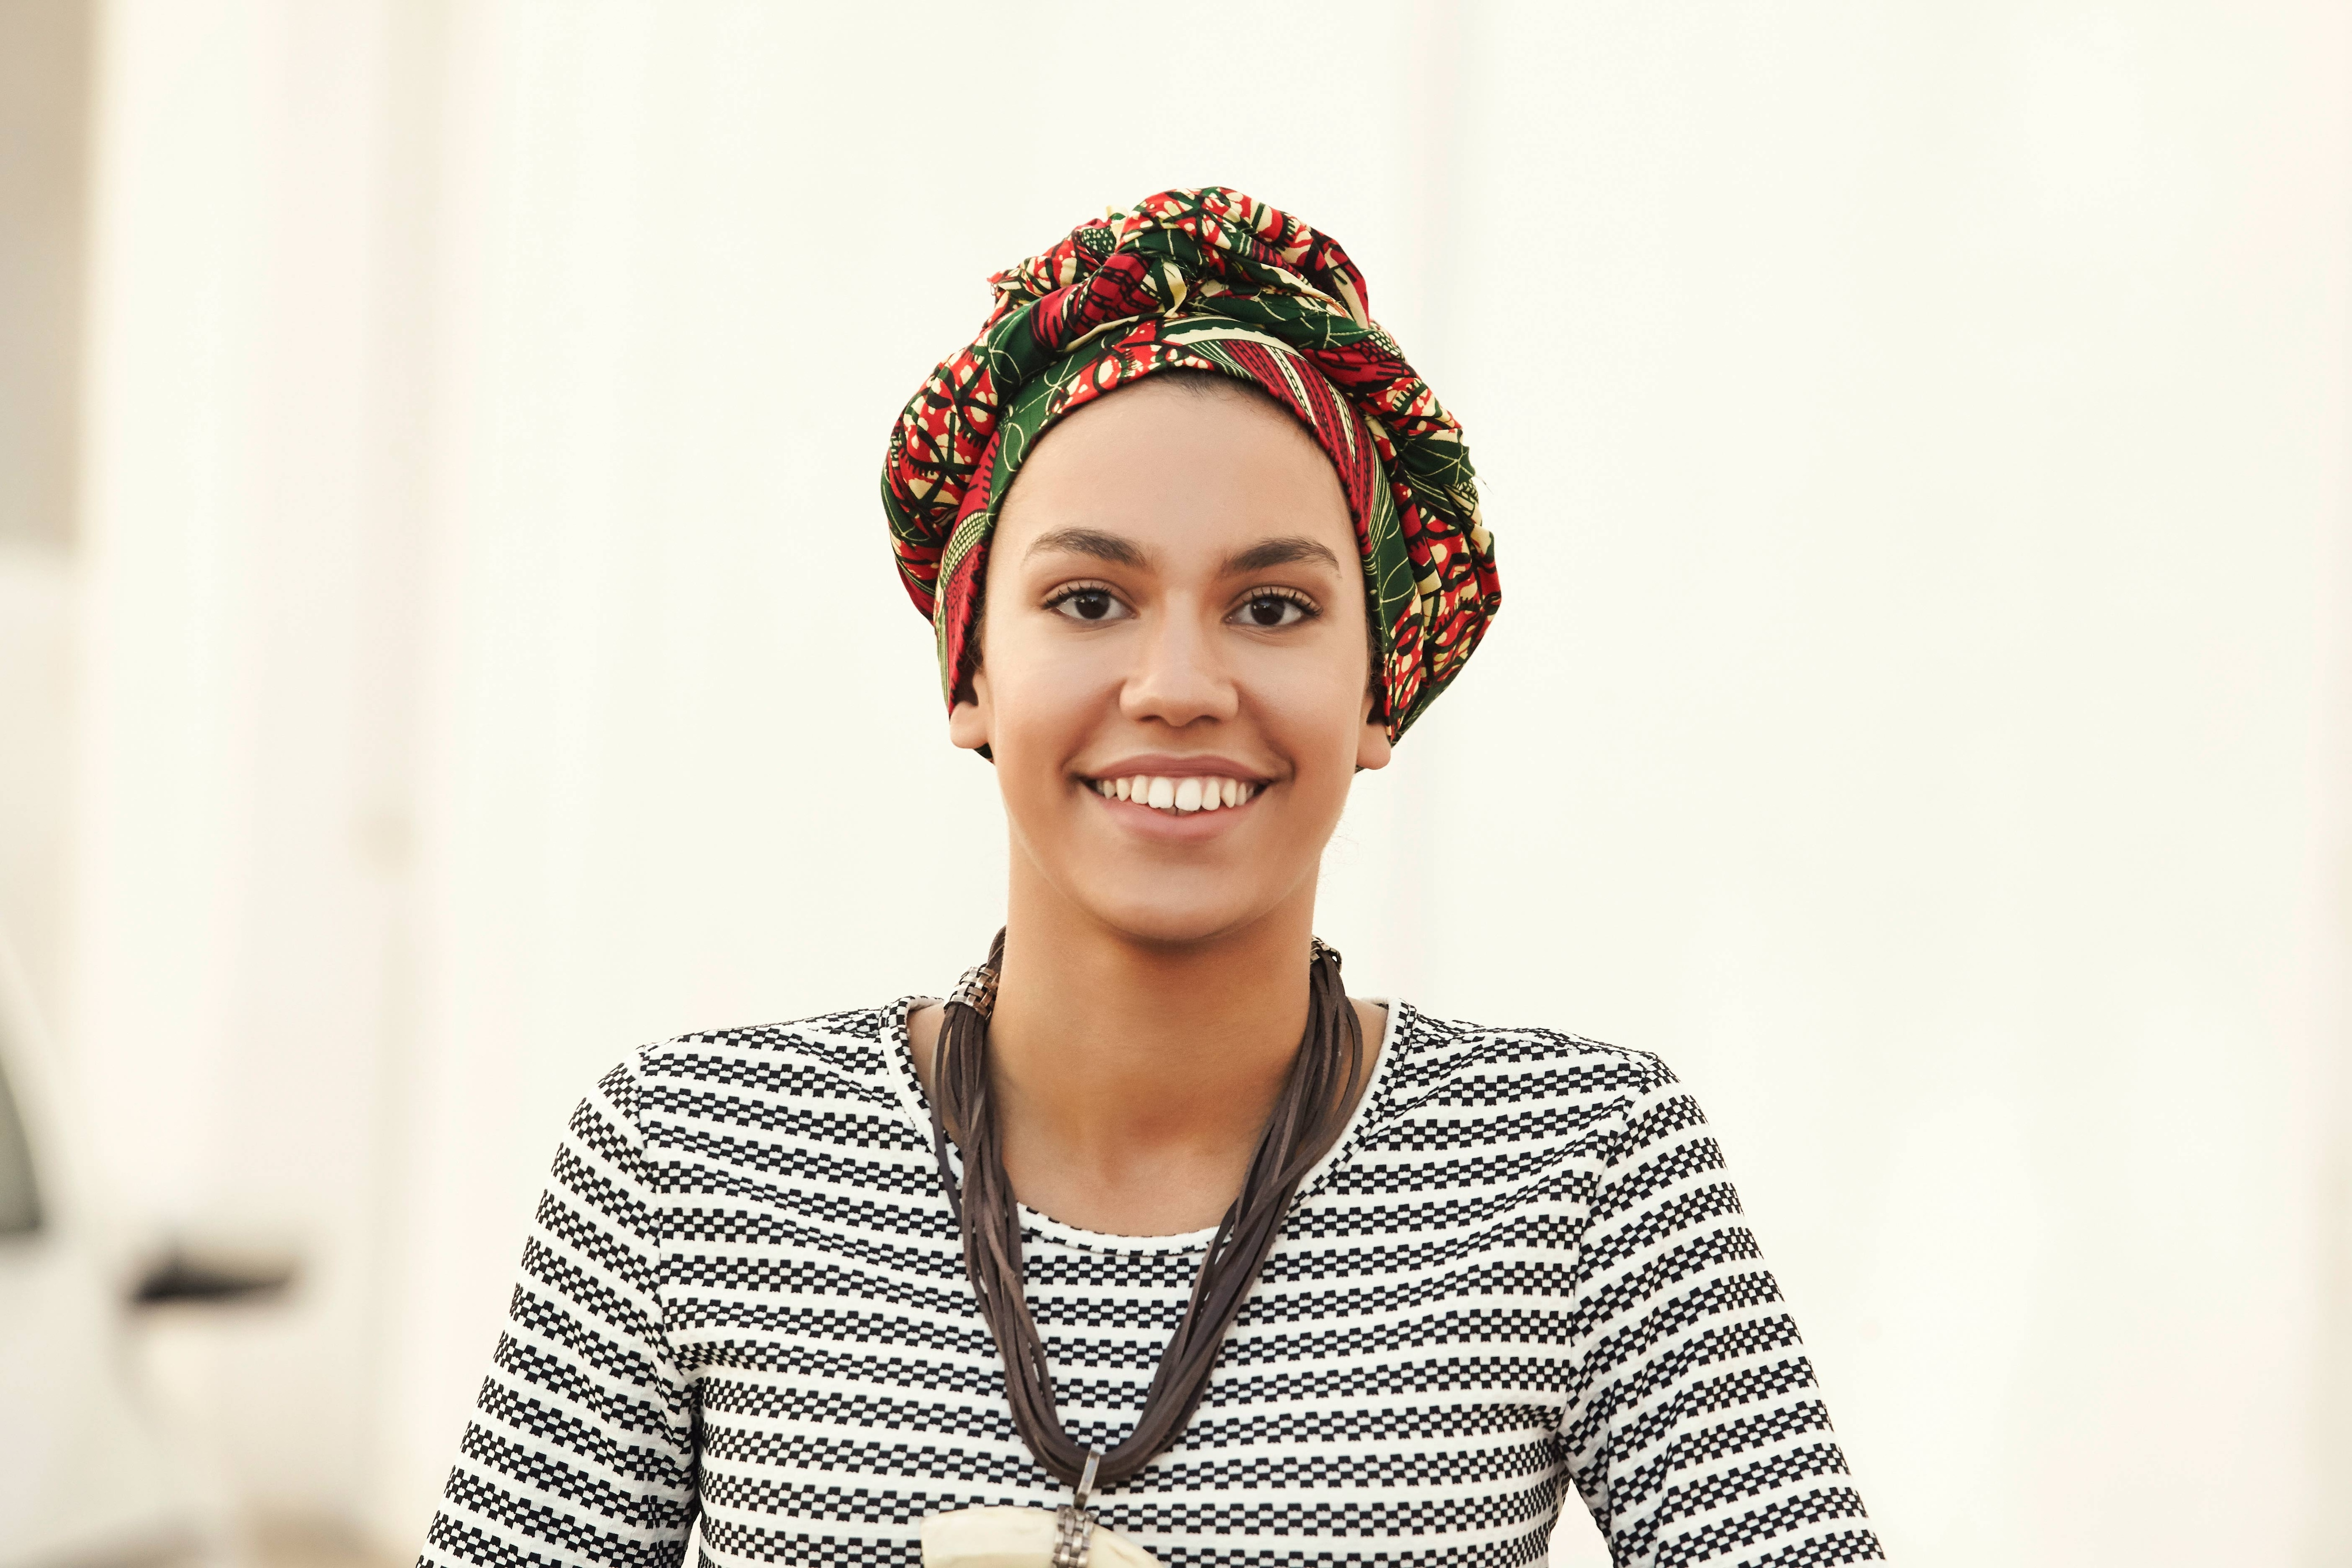 headwrap is one cool accessory for the fall